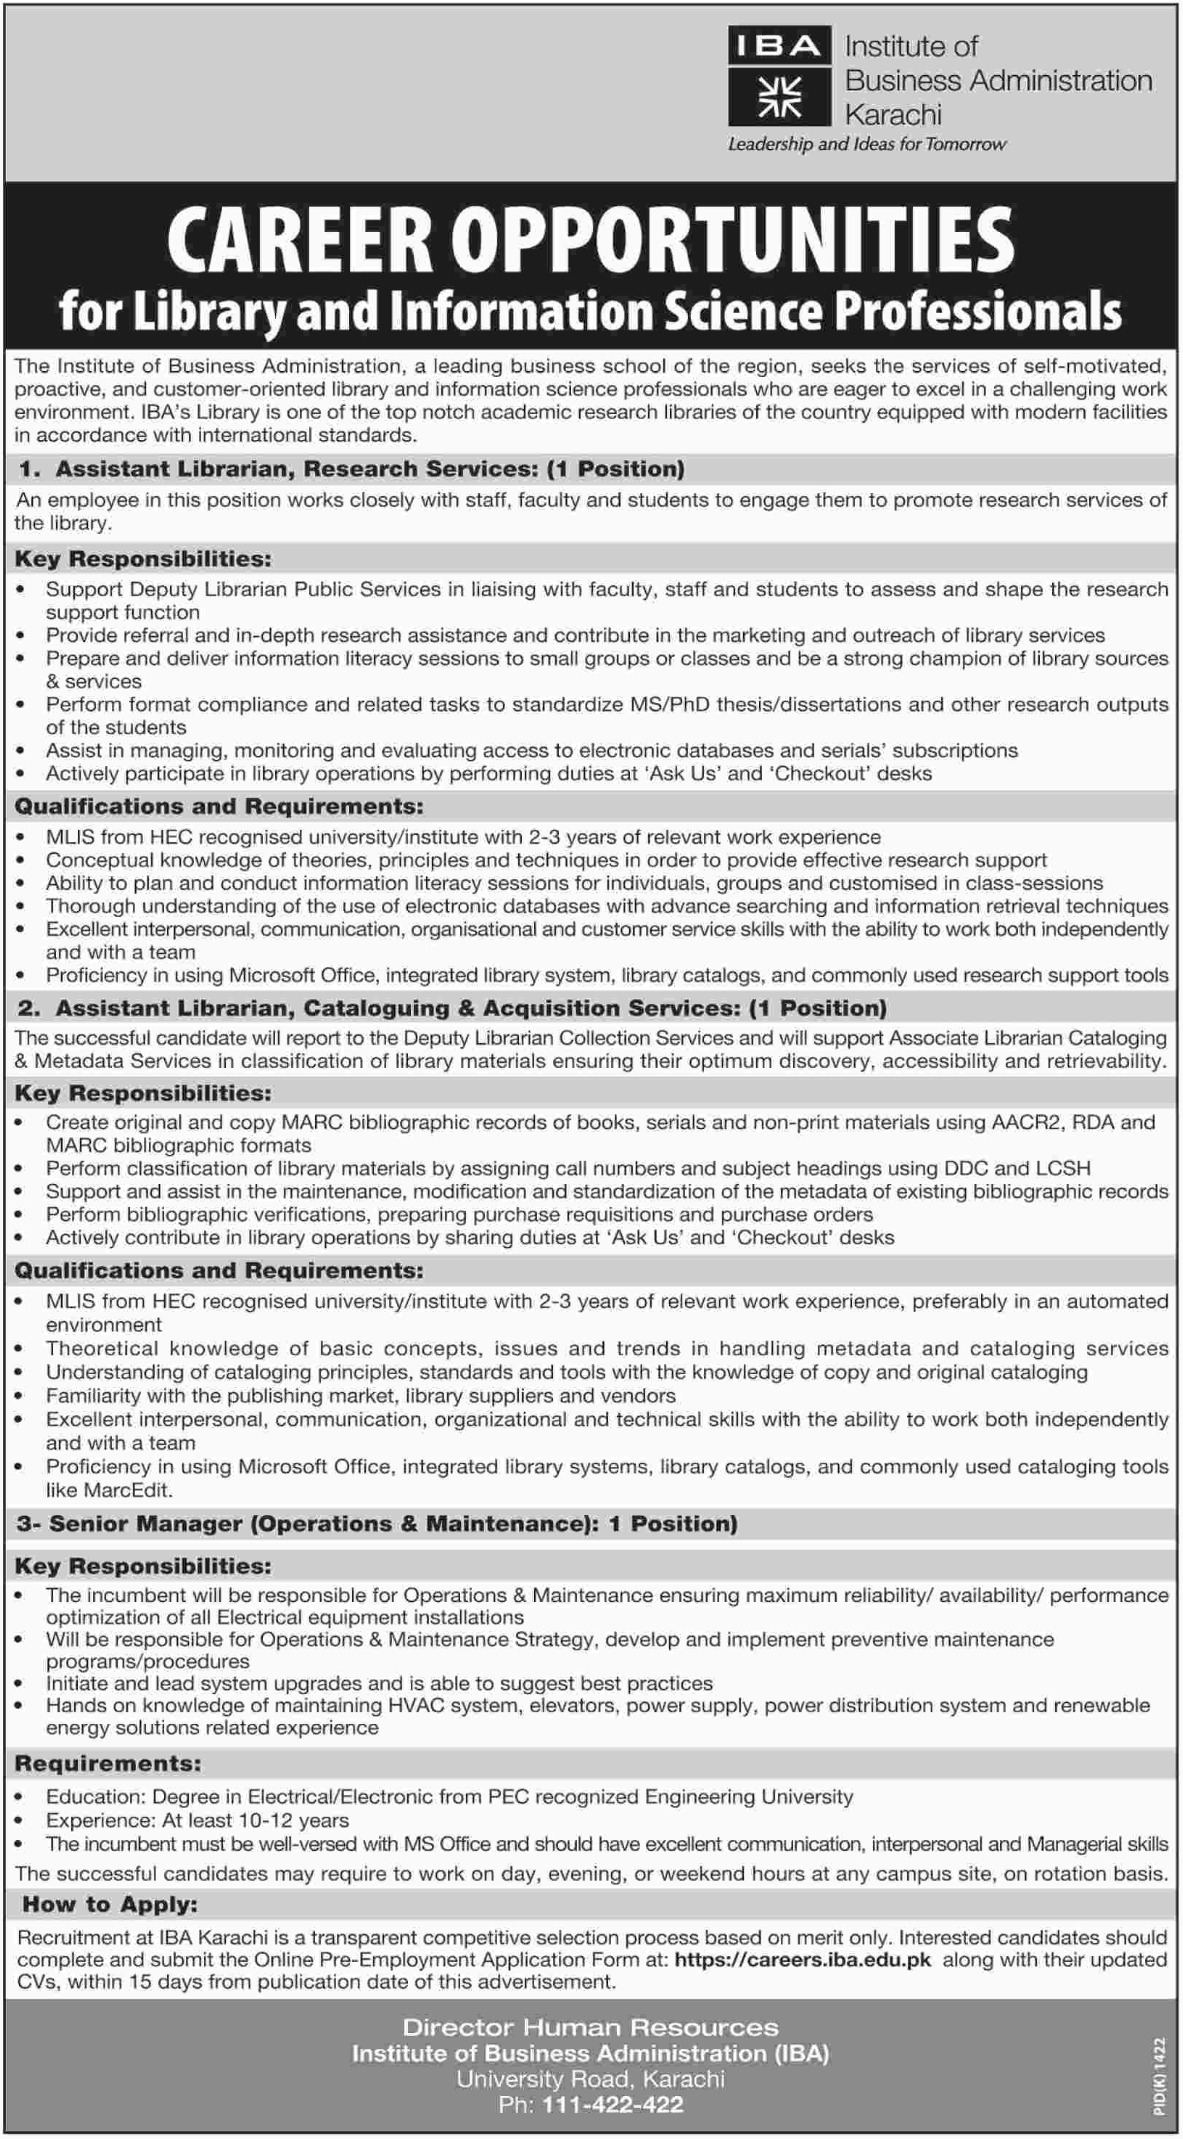 IBA Karachi Latest Jobs 19 October 2018